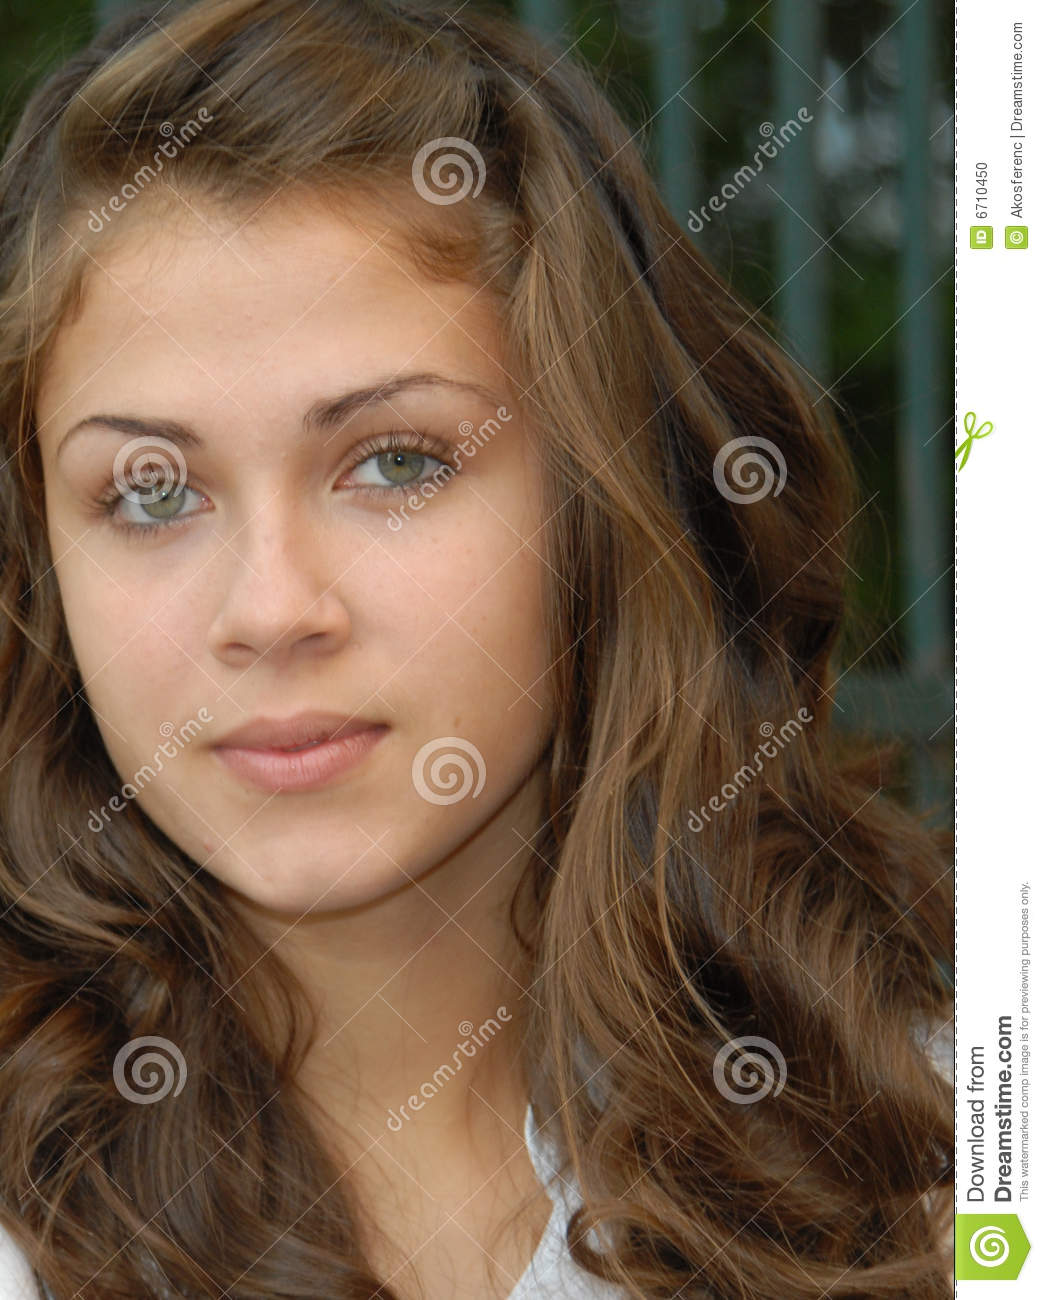 16 Years Old.. Stock Photo. Image Of Mouth, Girlie, Teen